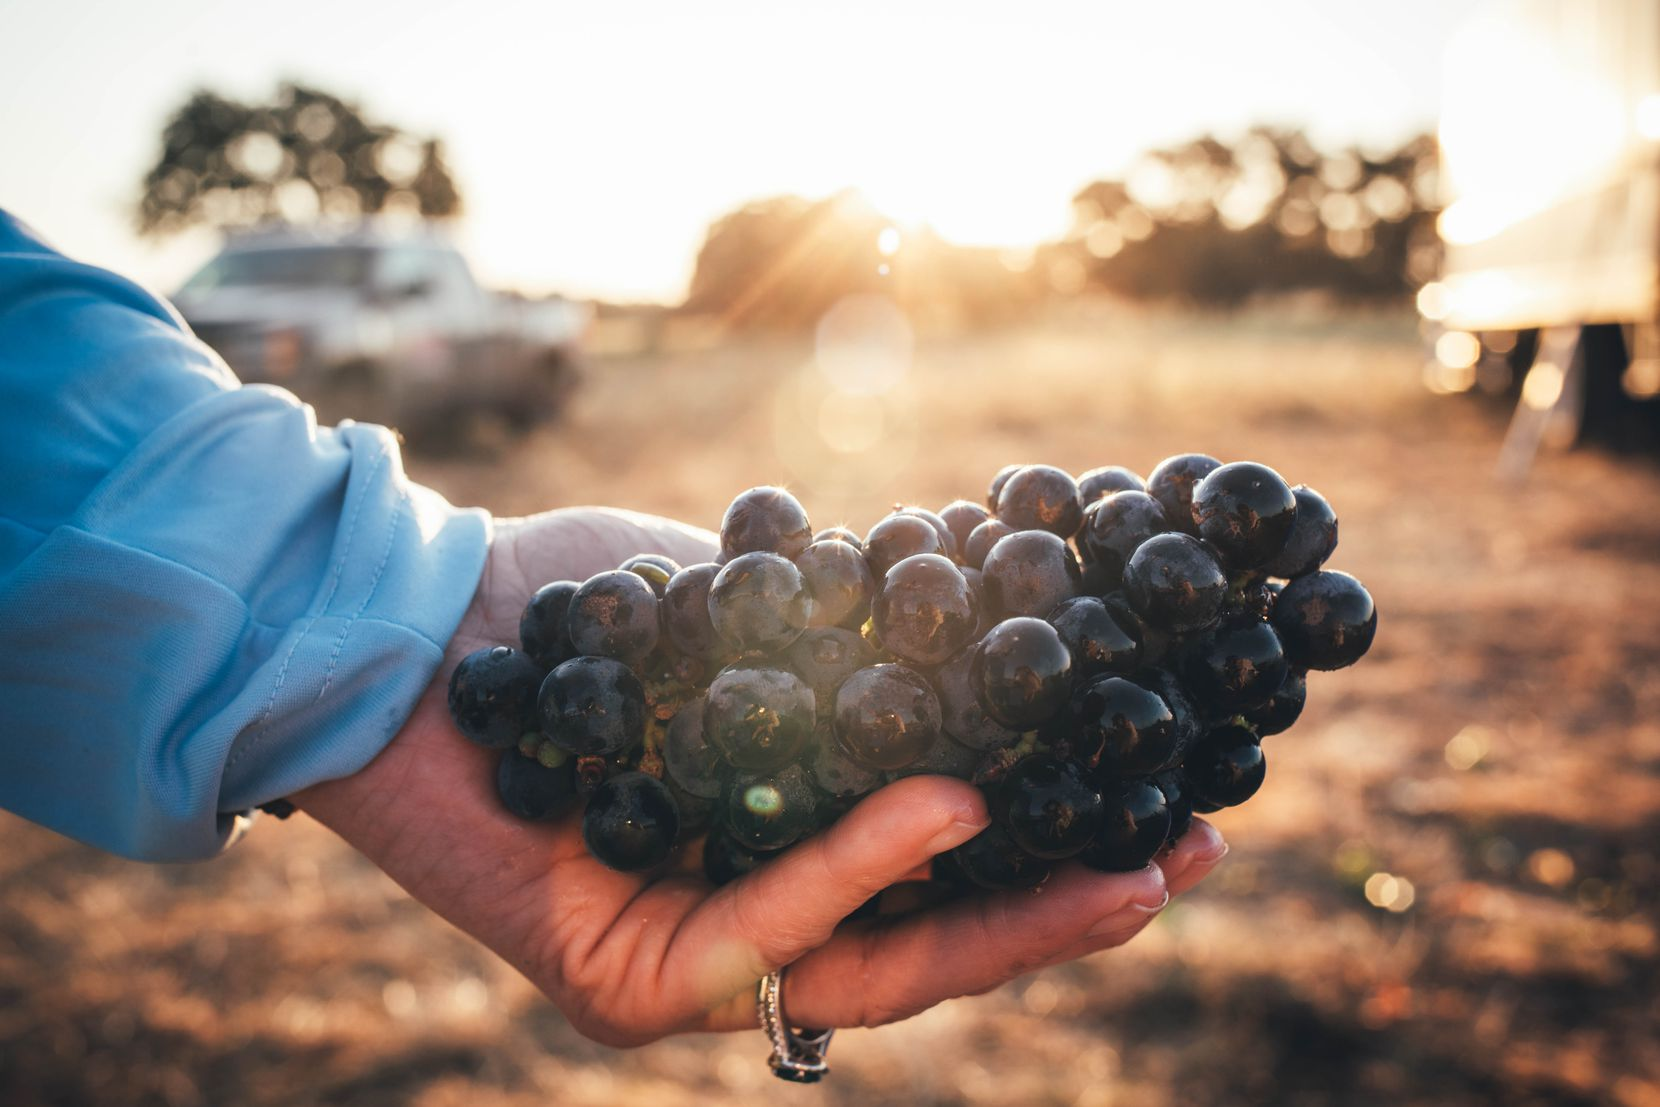 Bending Branch Winery and Tallent Vineyards share the first award of the Texas Sustainable Winegrowing Competition.